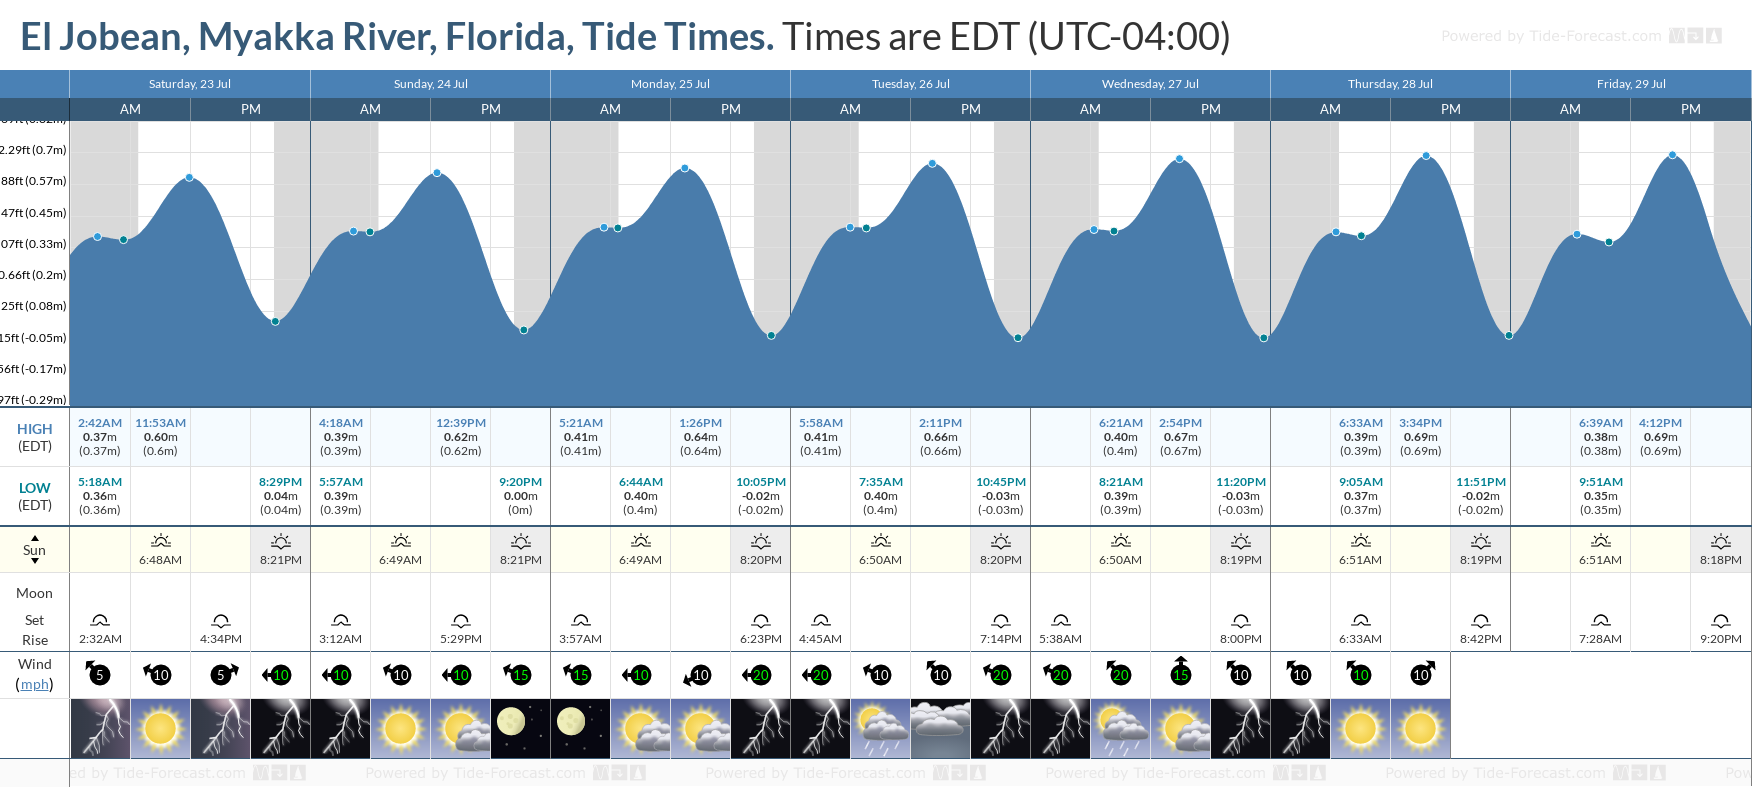 El Jobean, Myakka River, Florida Tide Chart including high and low tide tide times for the next 7 days